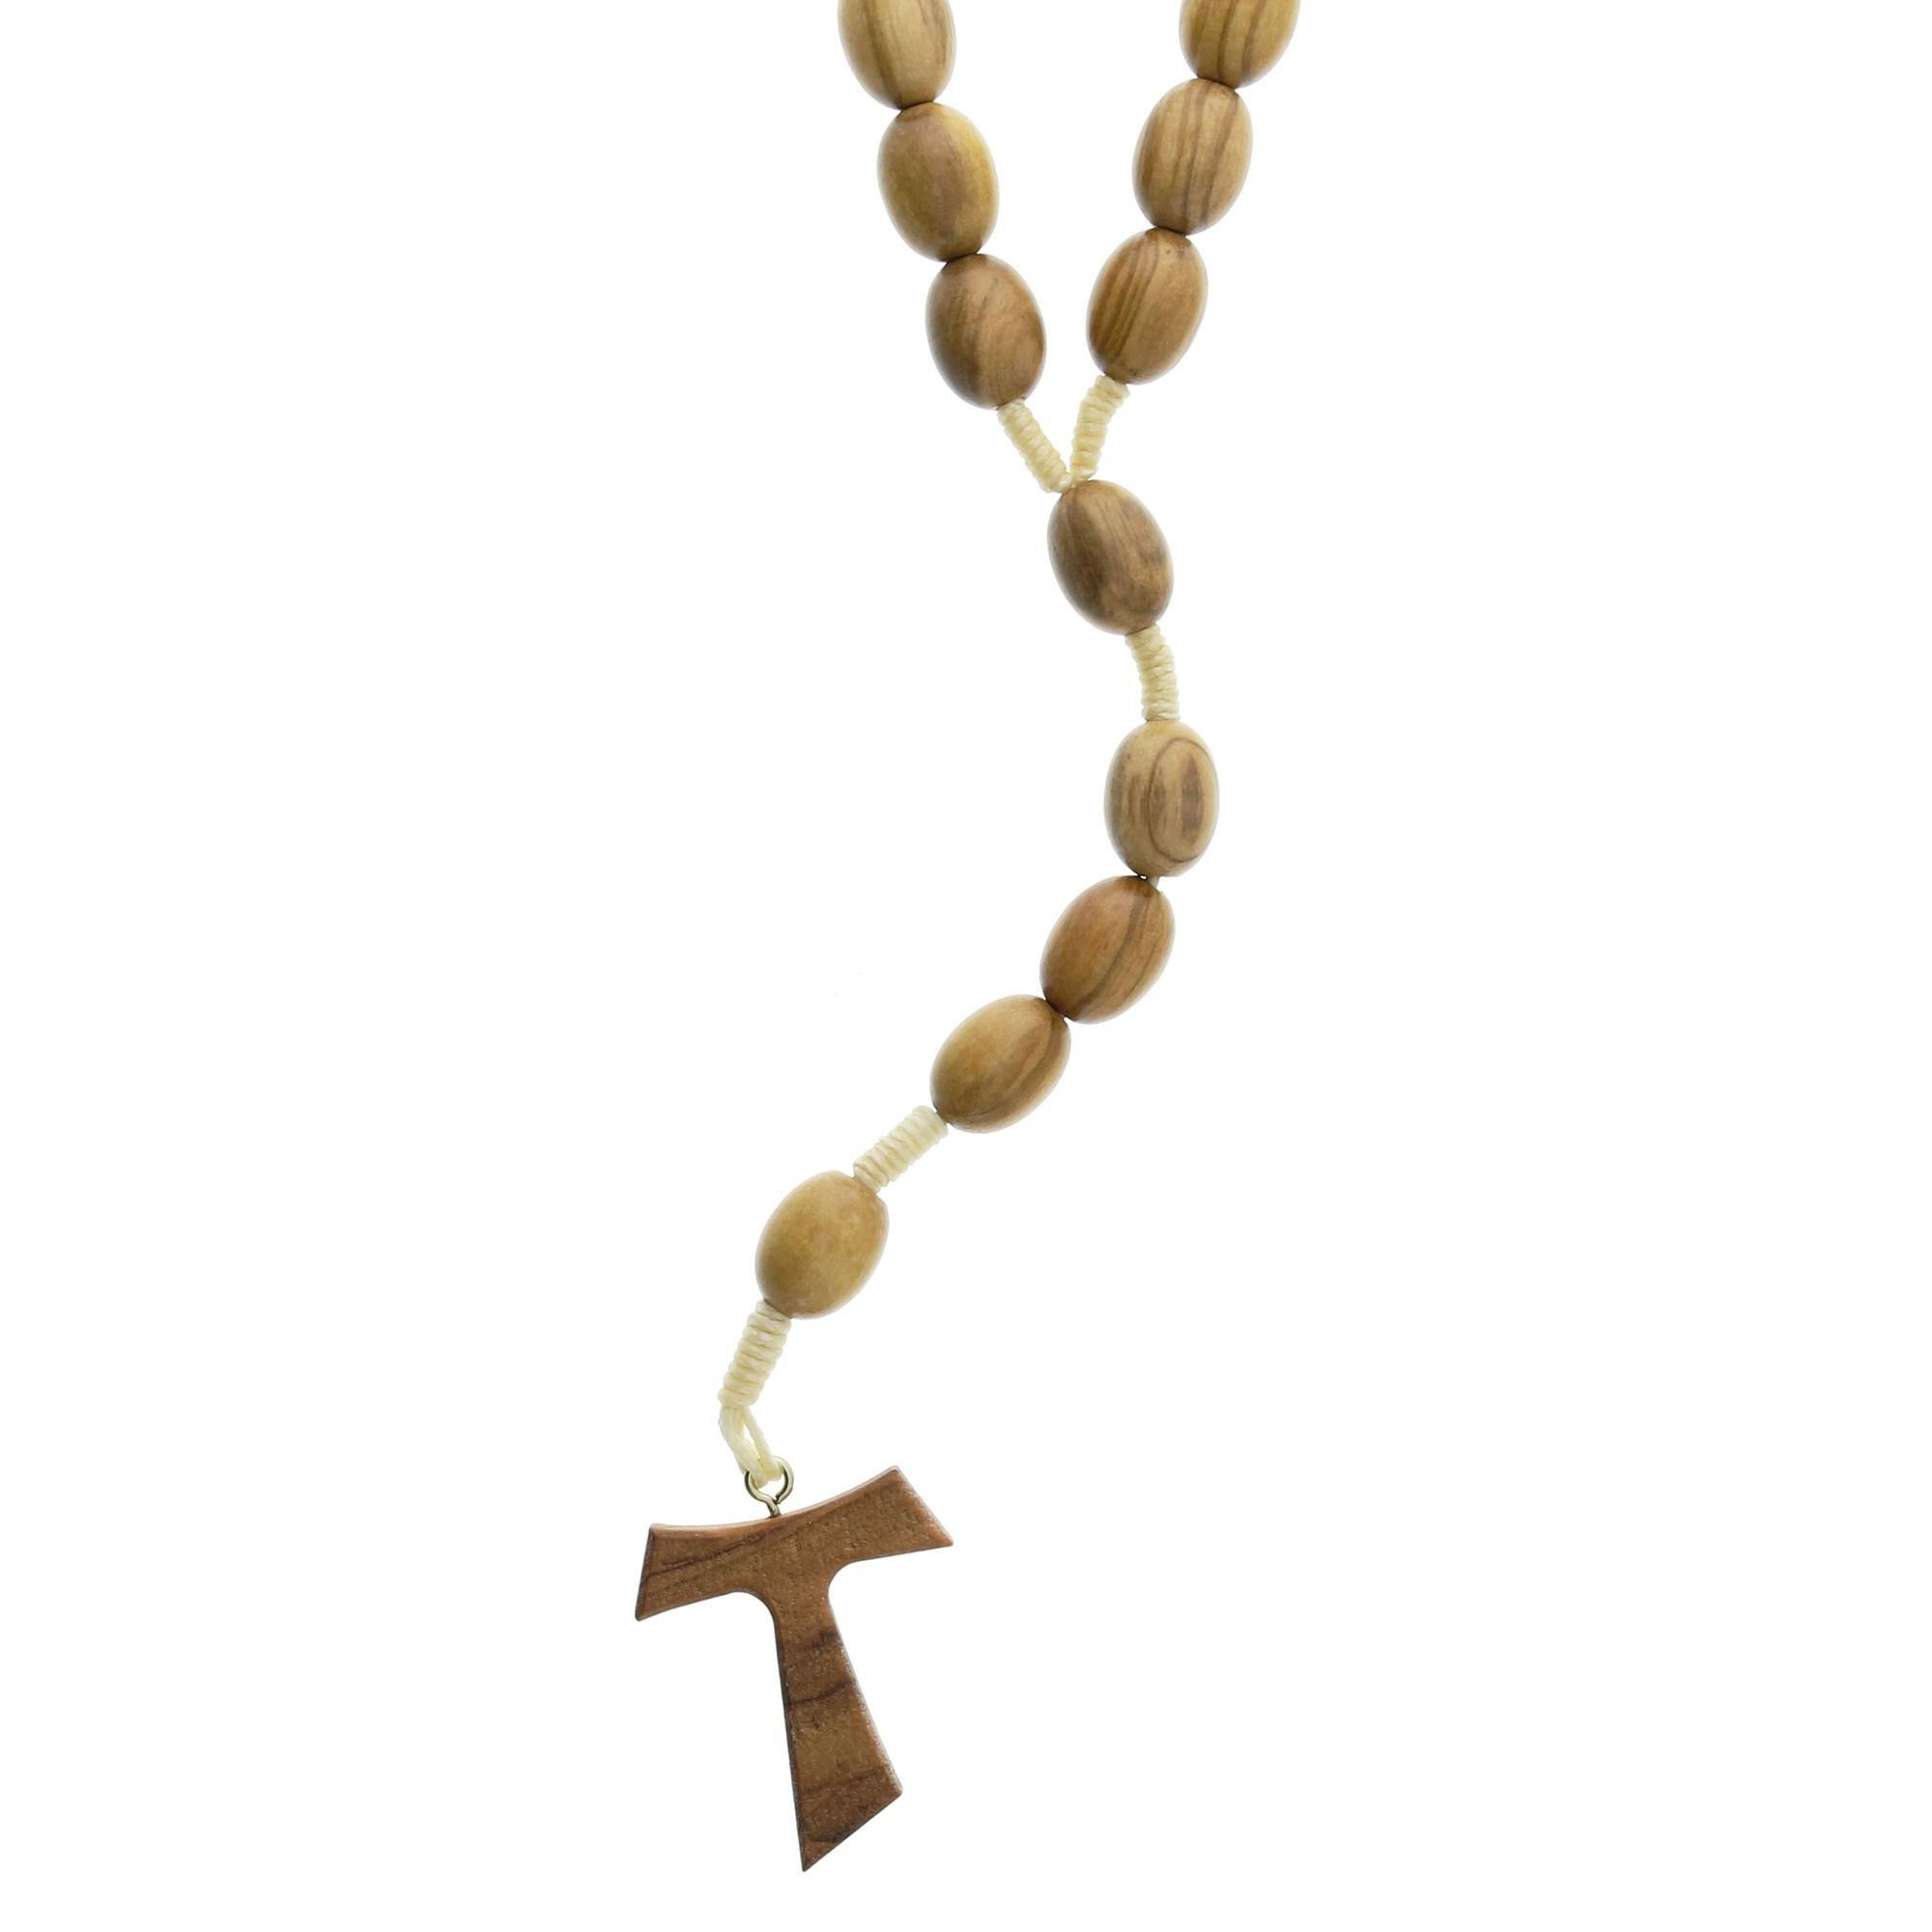 Tau Cross Olive Wood Franciscan Rosary Made In Italy